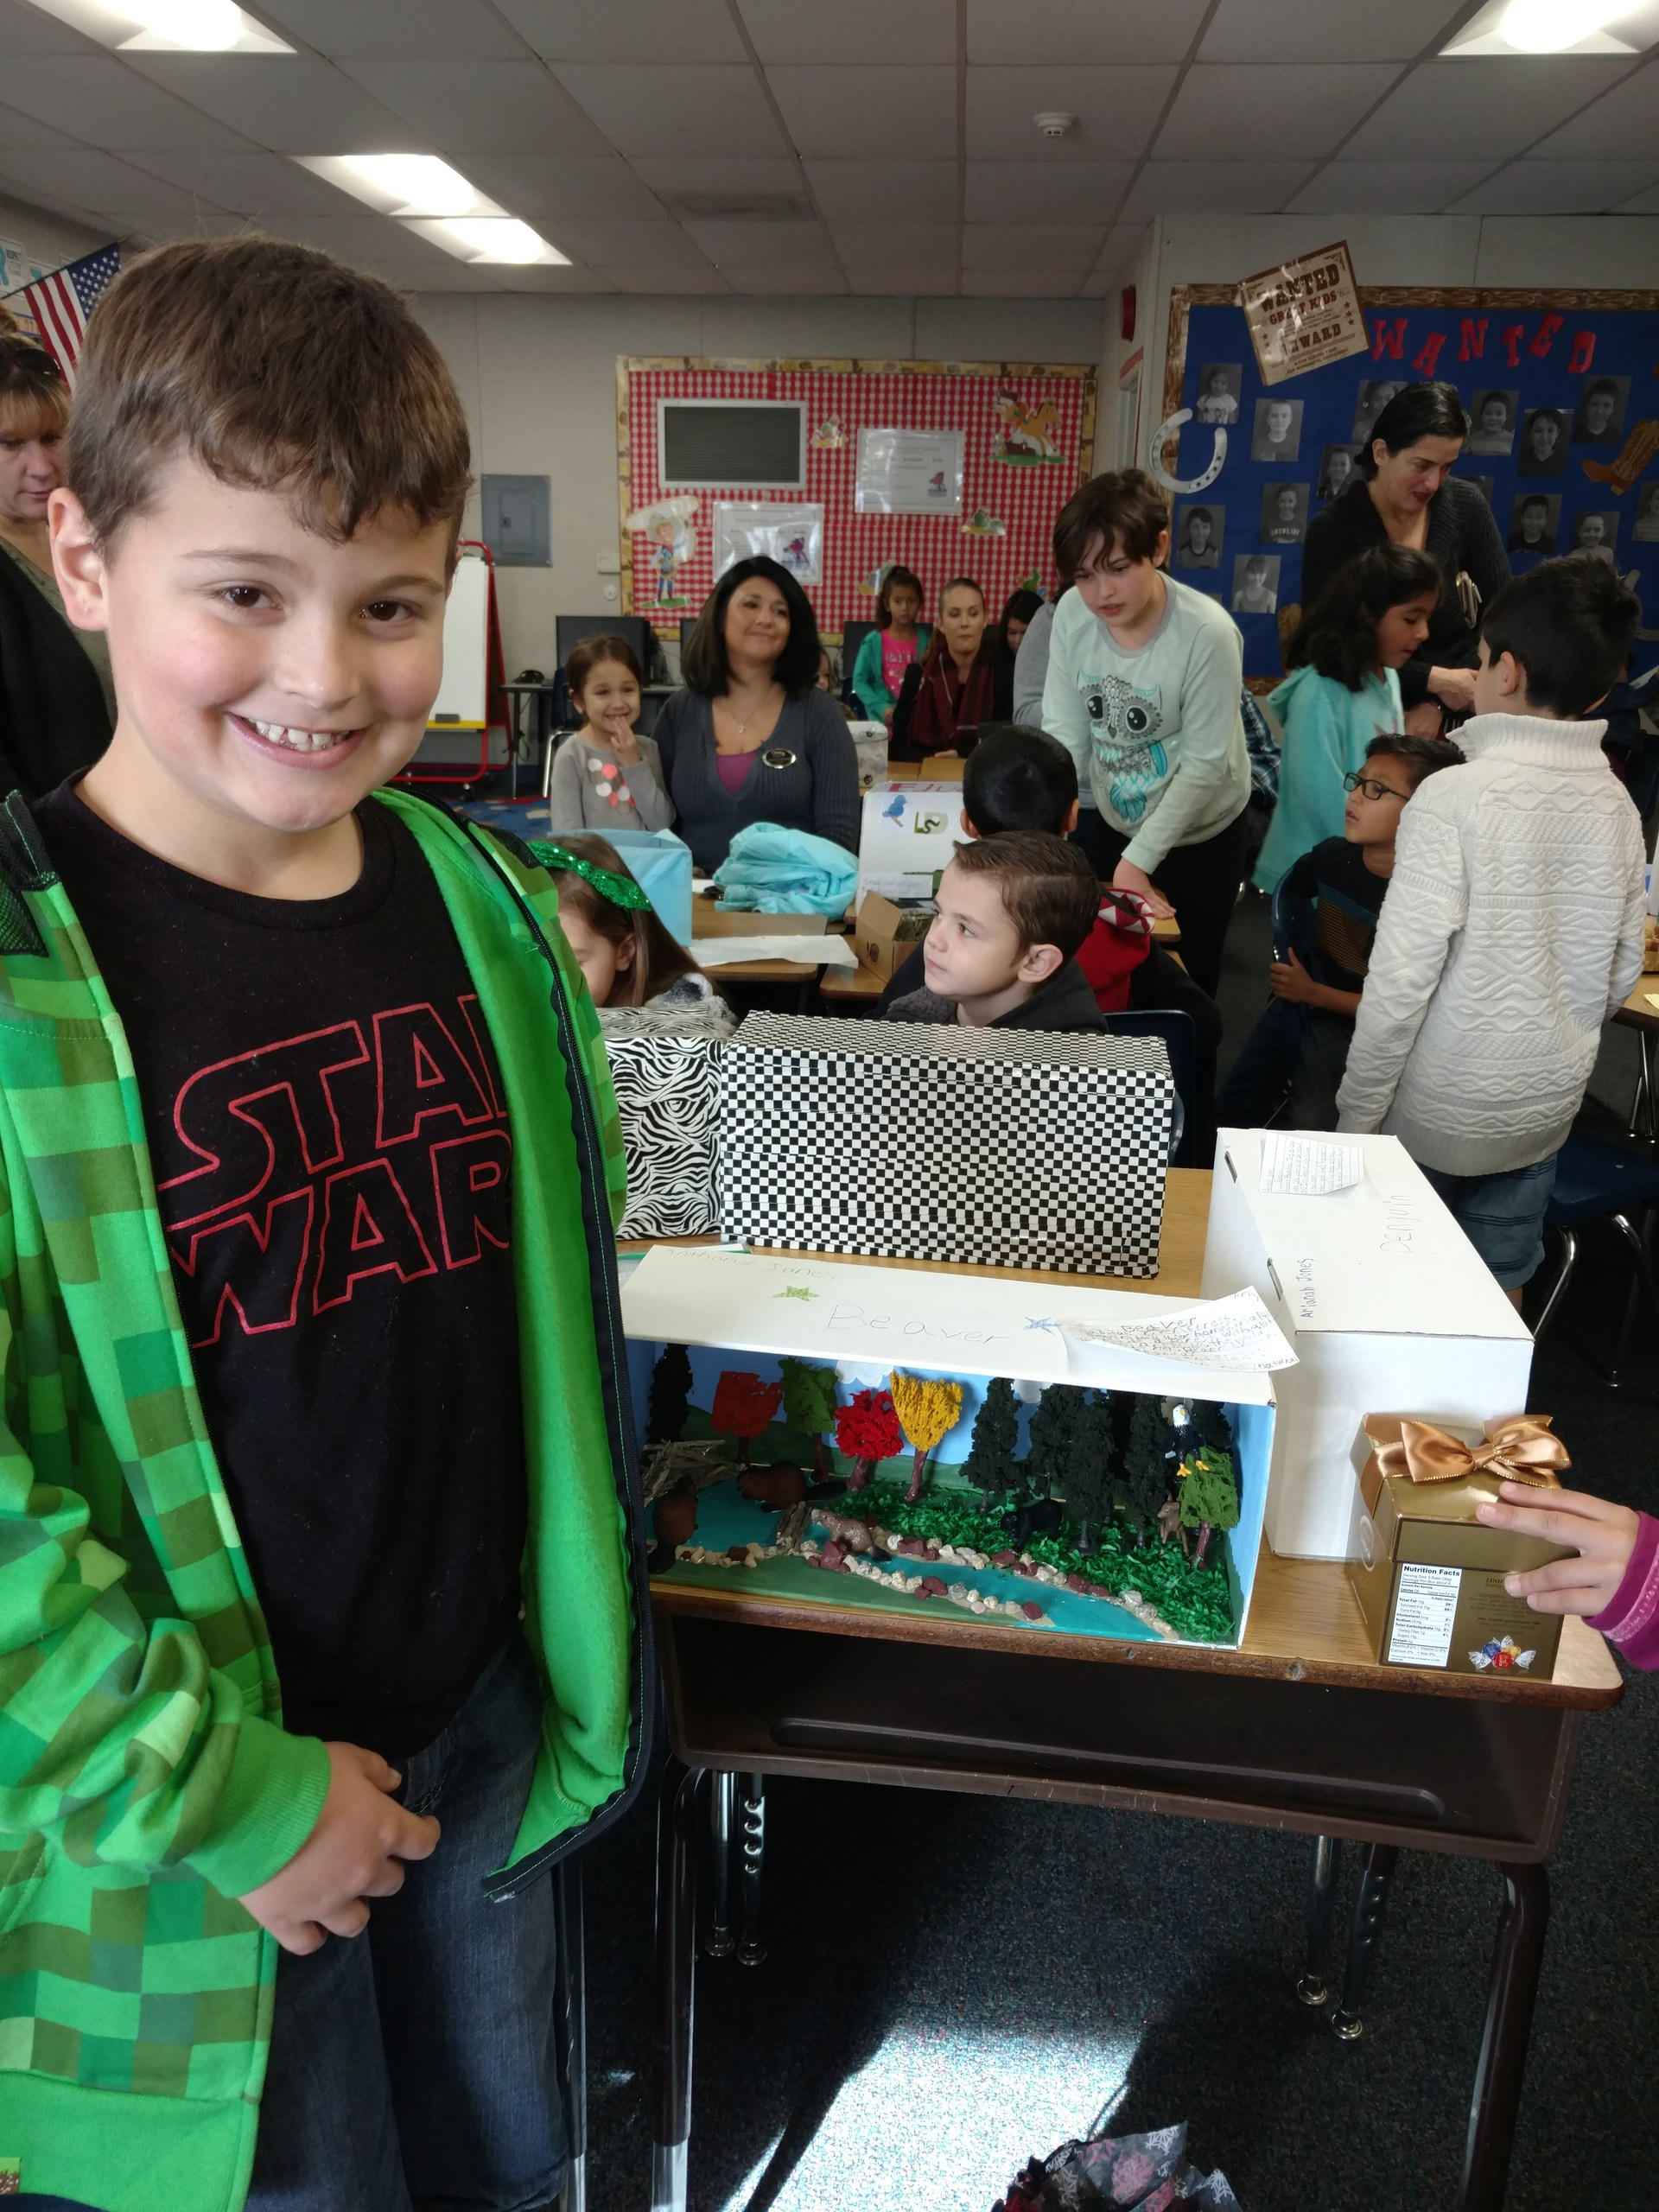 Student showing his project